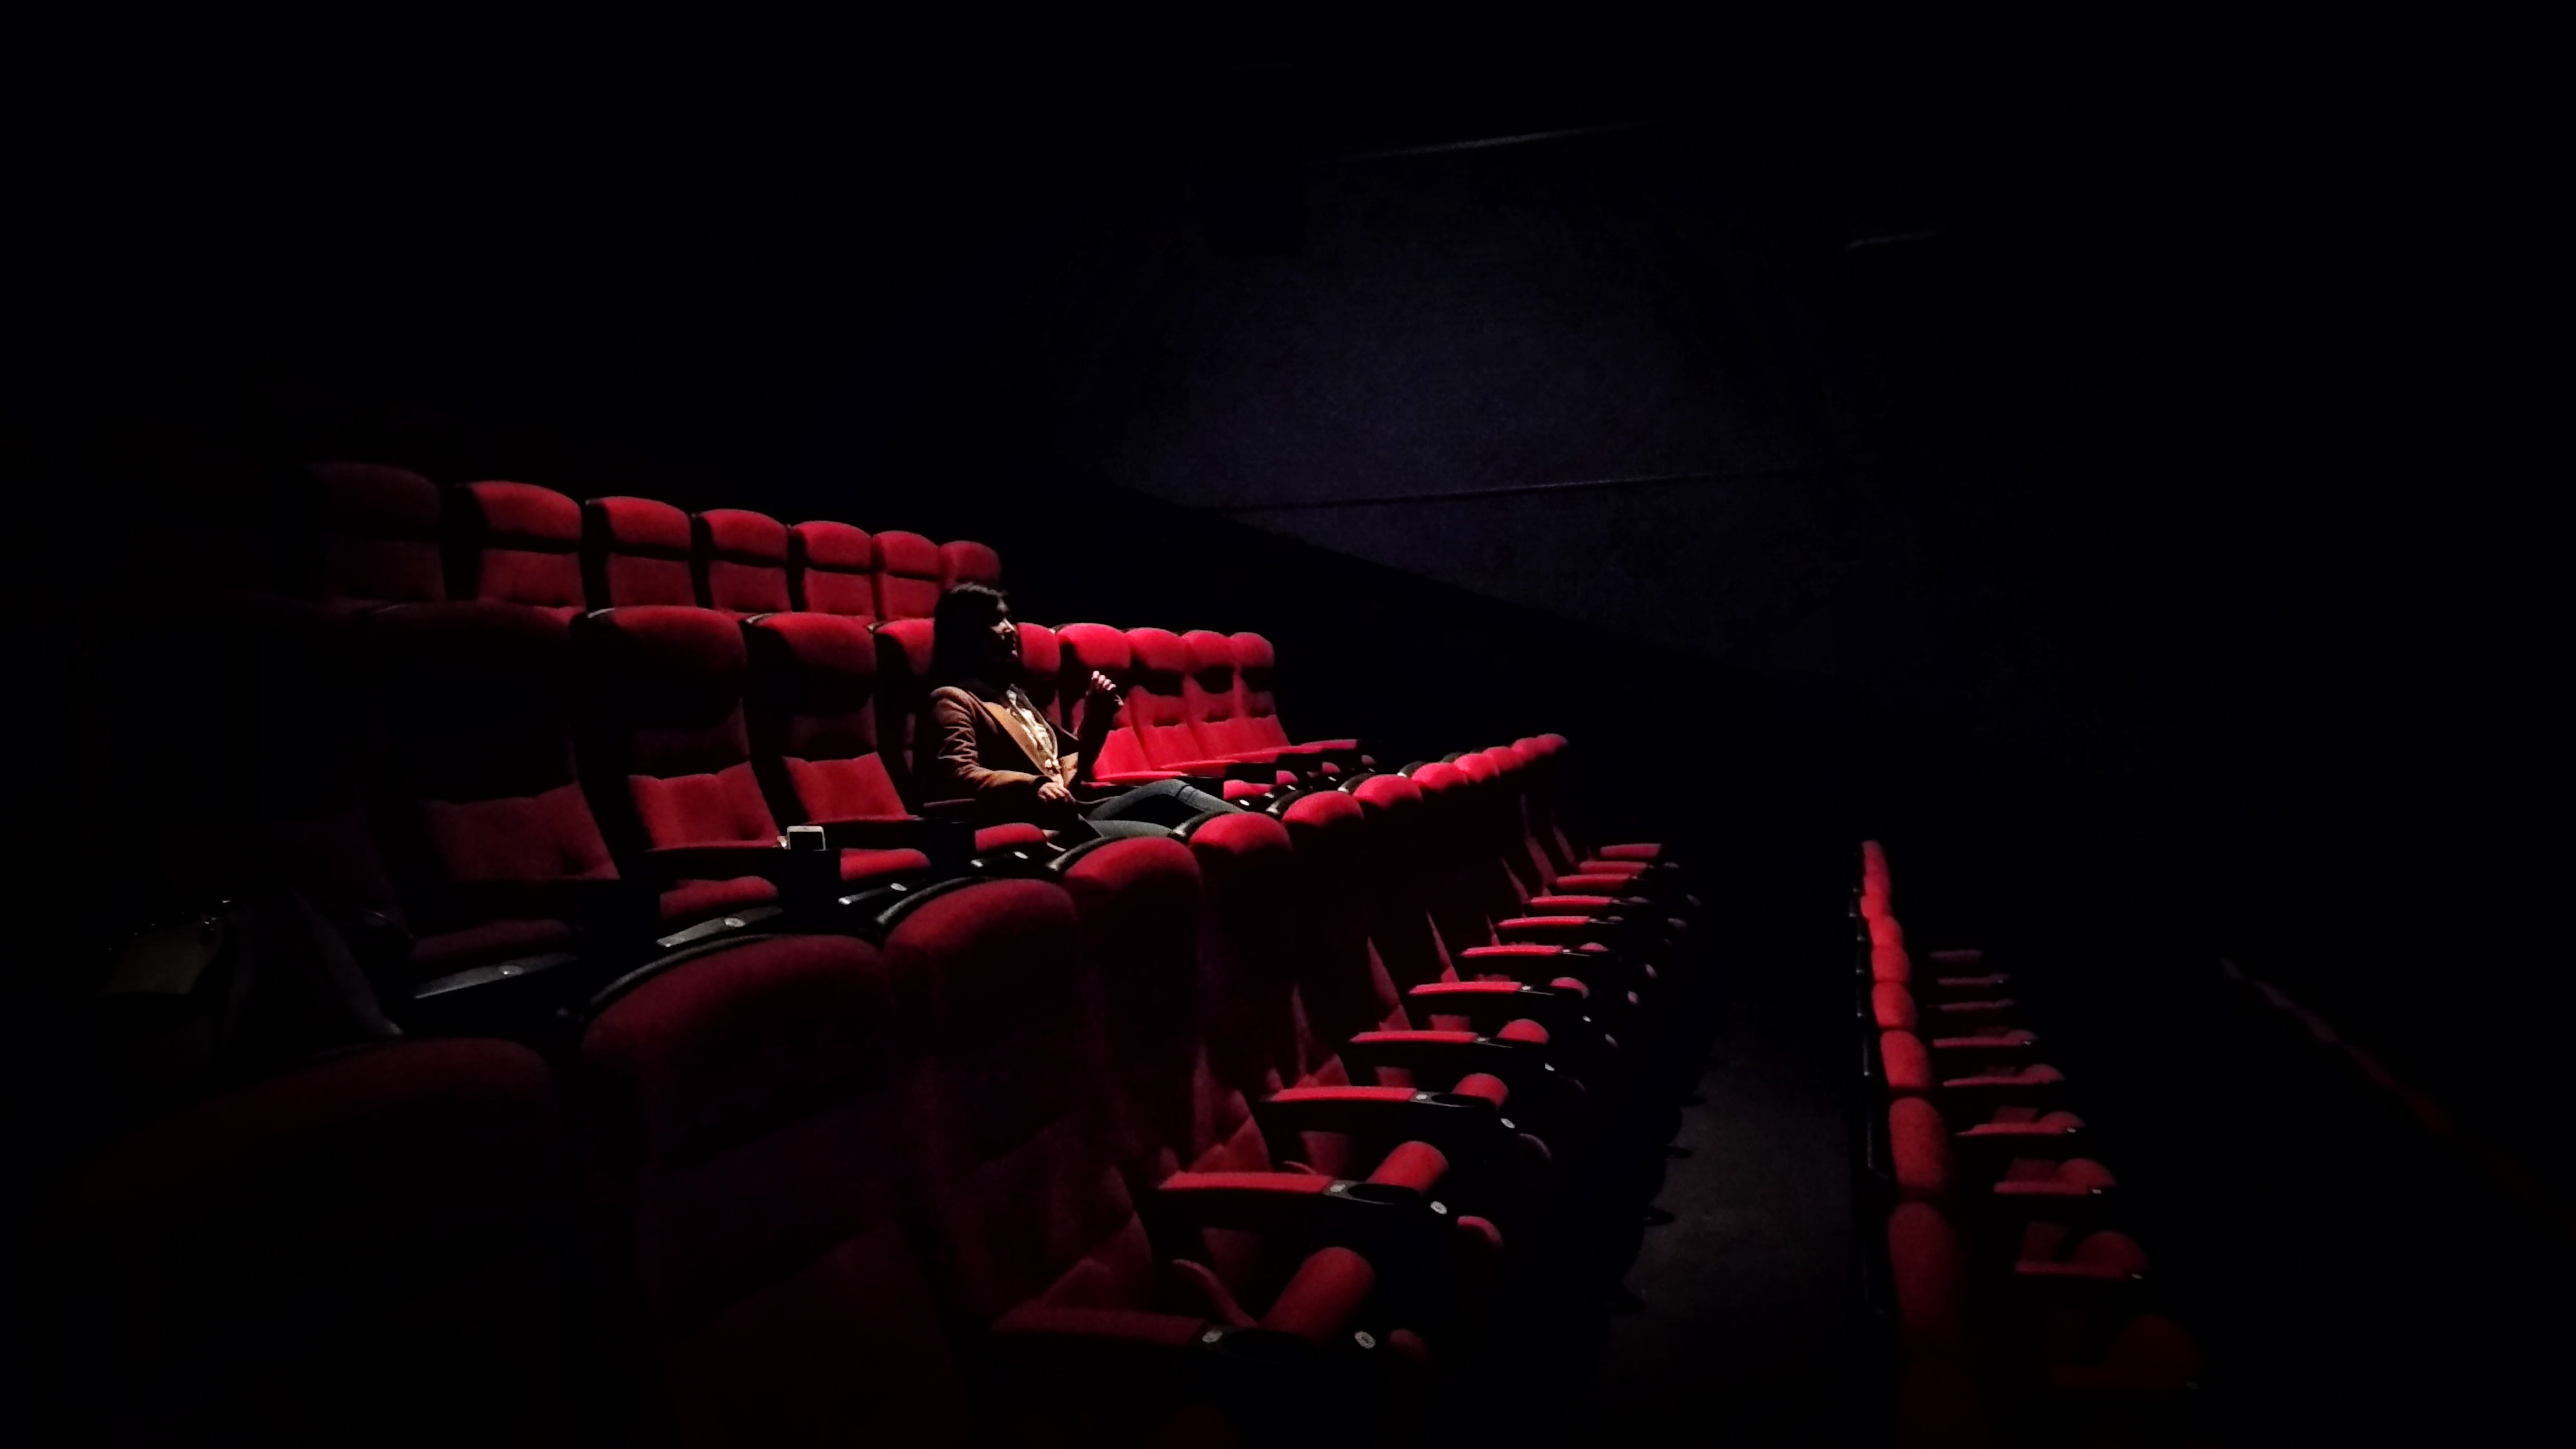 Woman alone in the audience in a movie theater